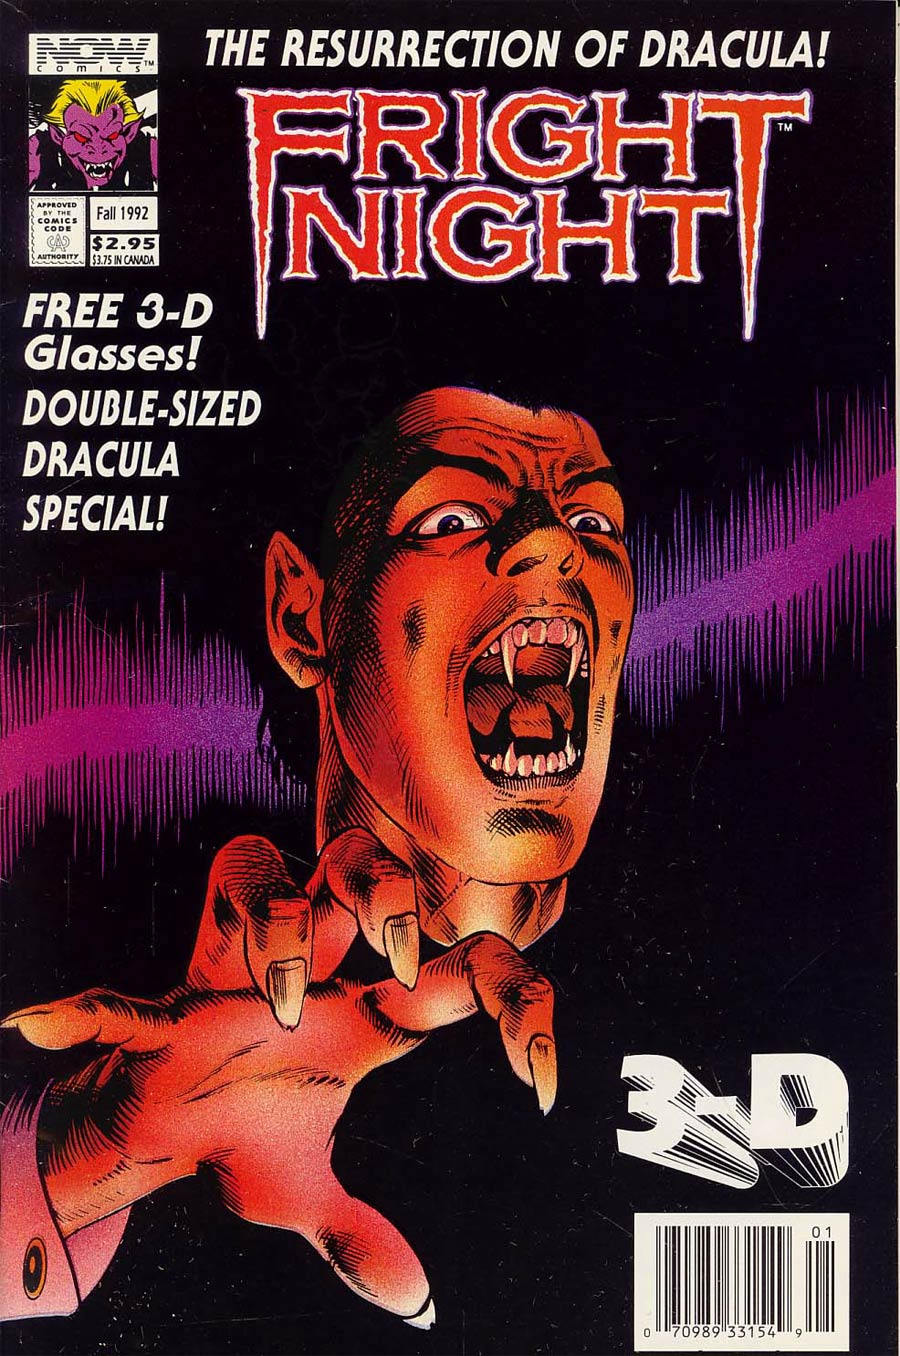 Fright Night 3-D Fall 1992 Special #1 Cover B Without Polybag